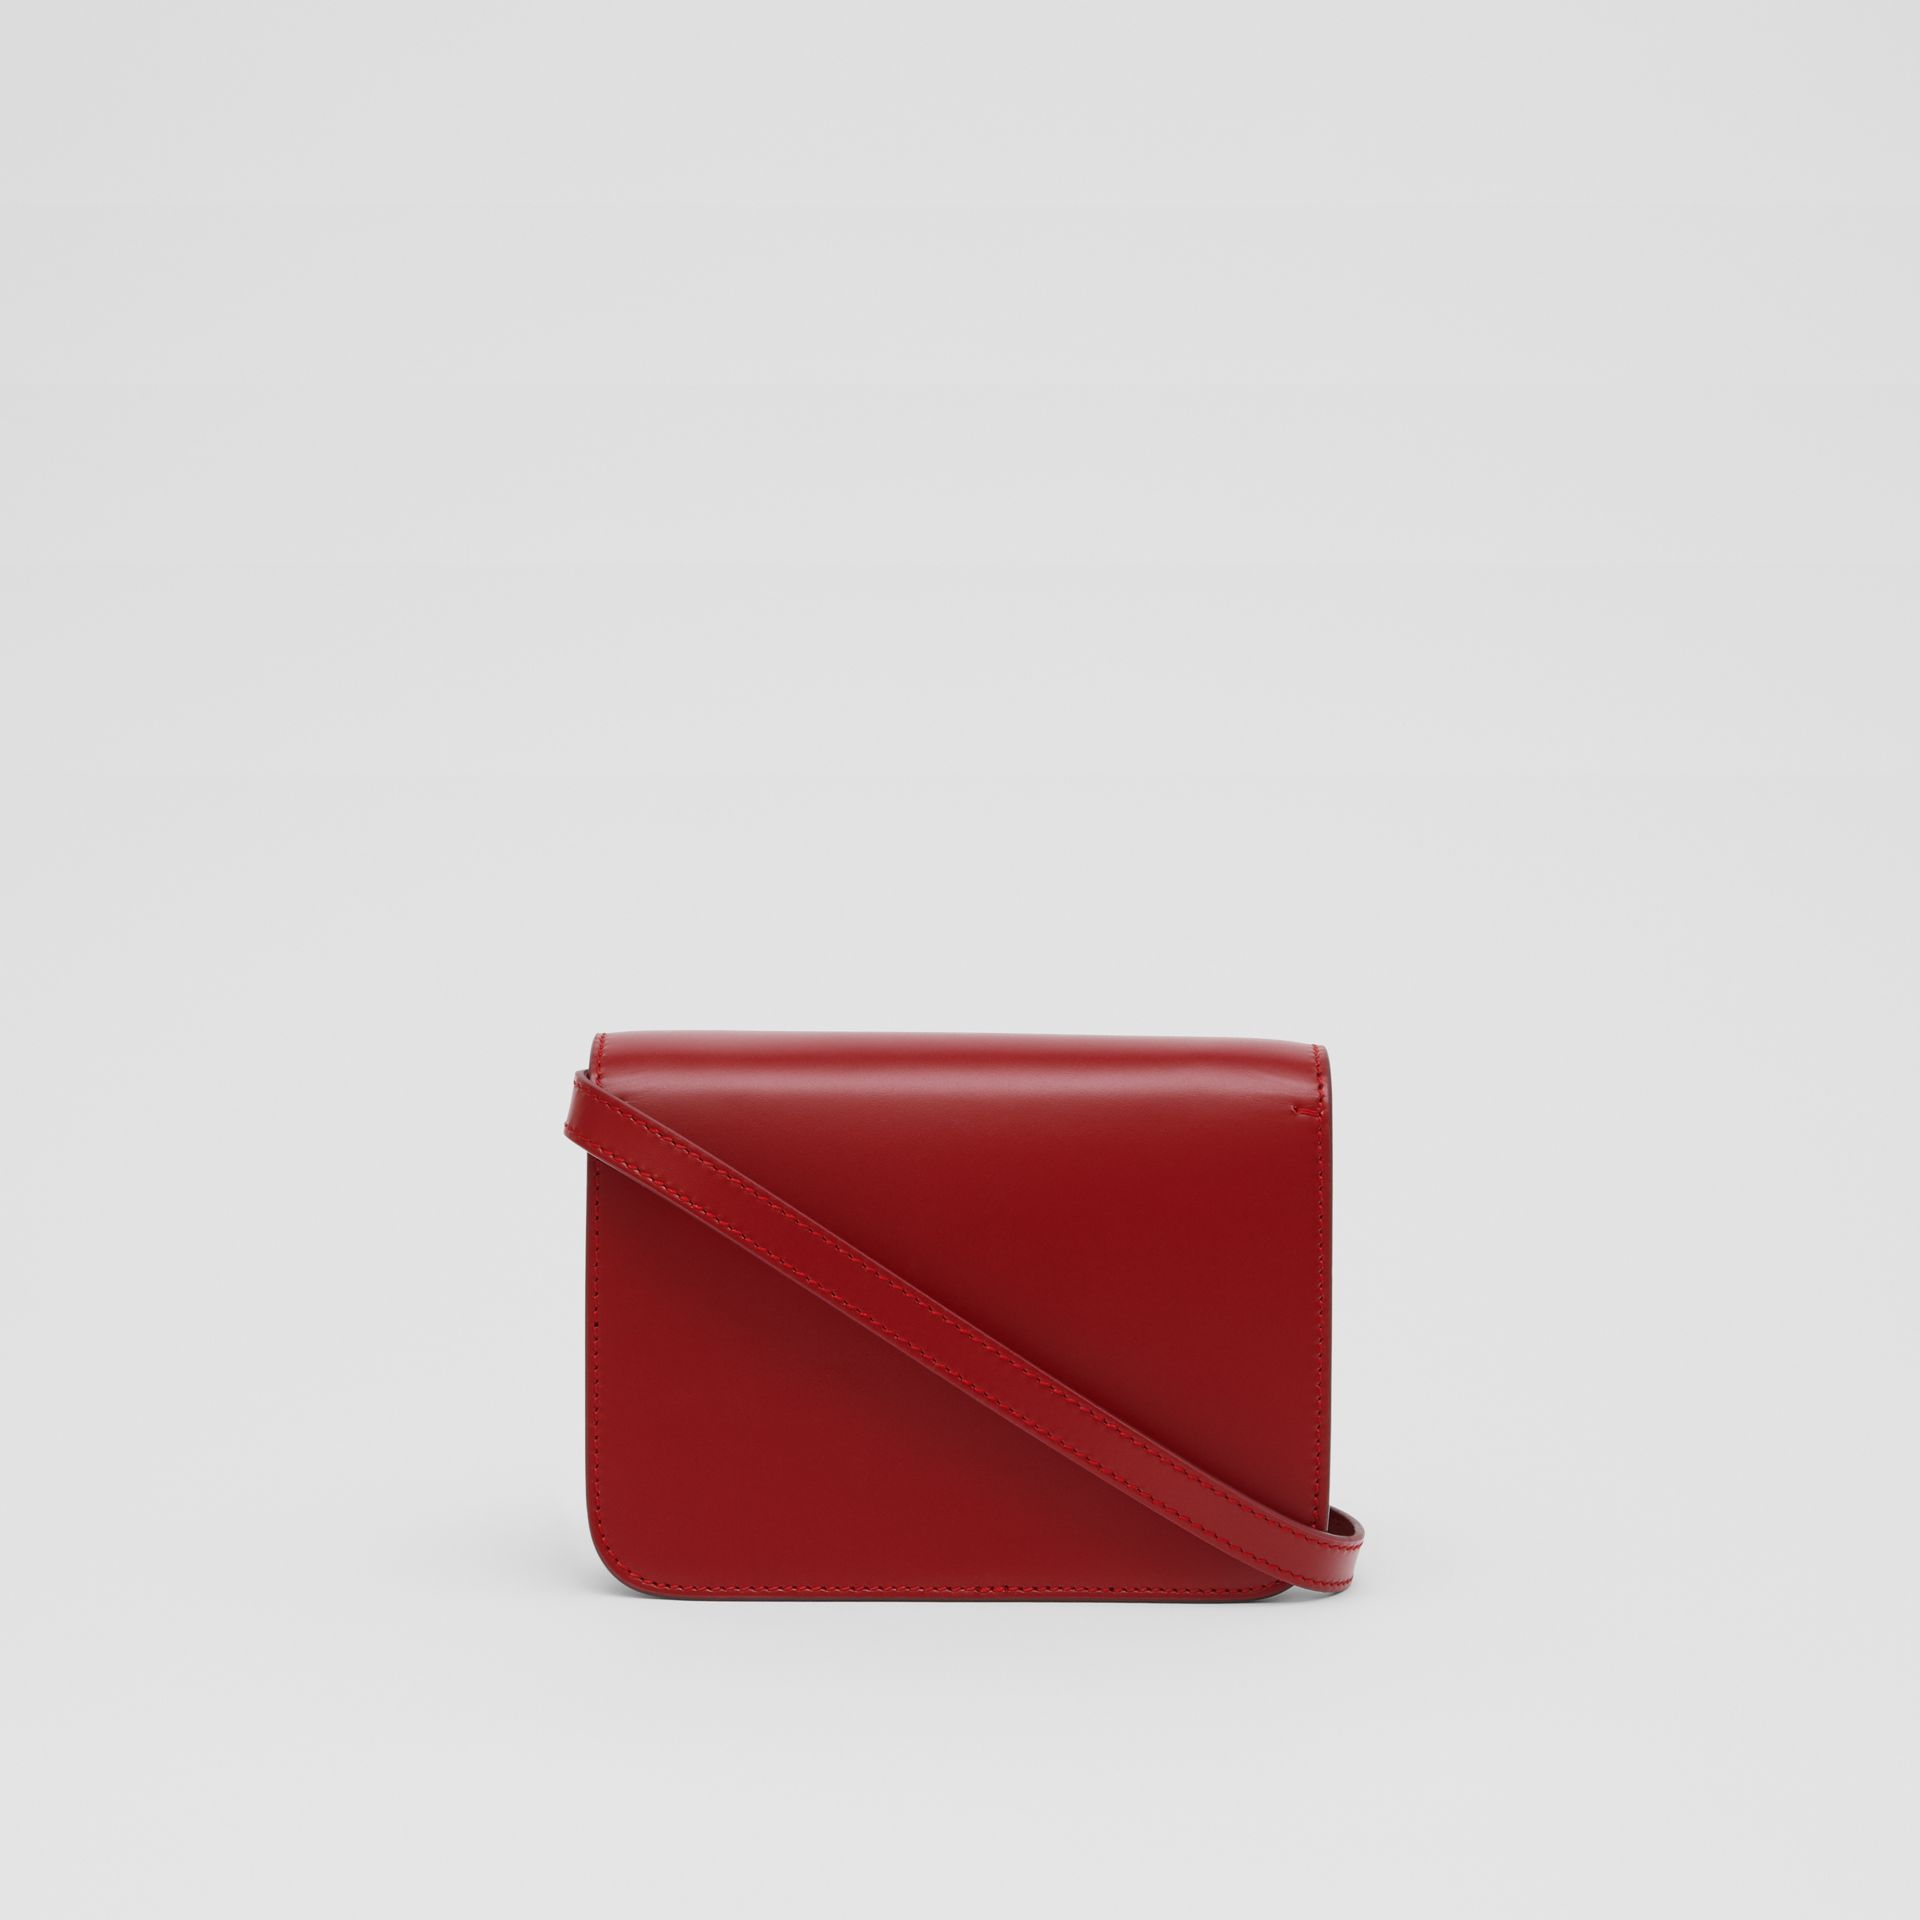 Mini Leather TB Bag in Dark Carmine - Women | Burberry - gallery image 7